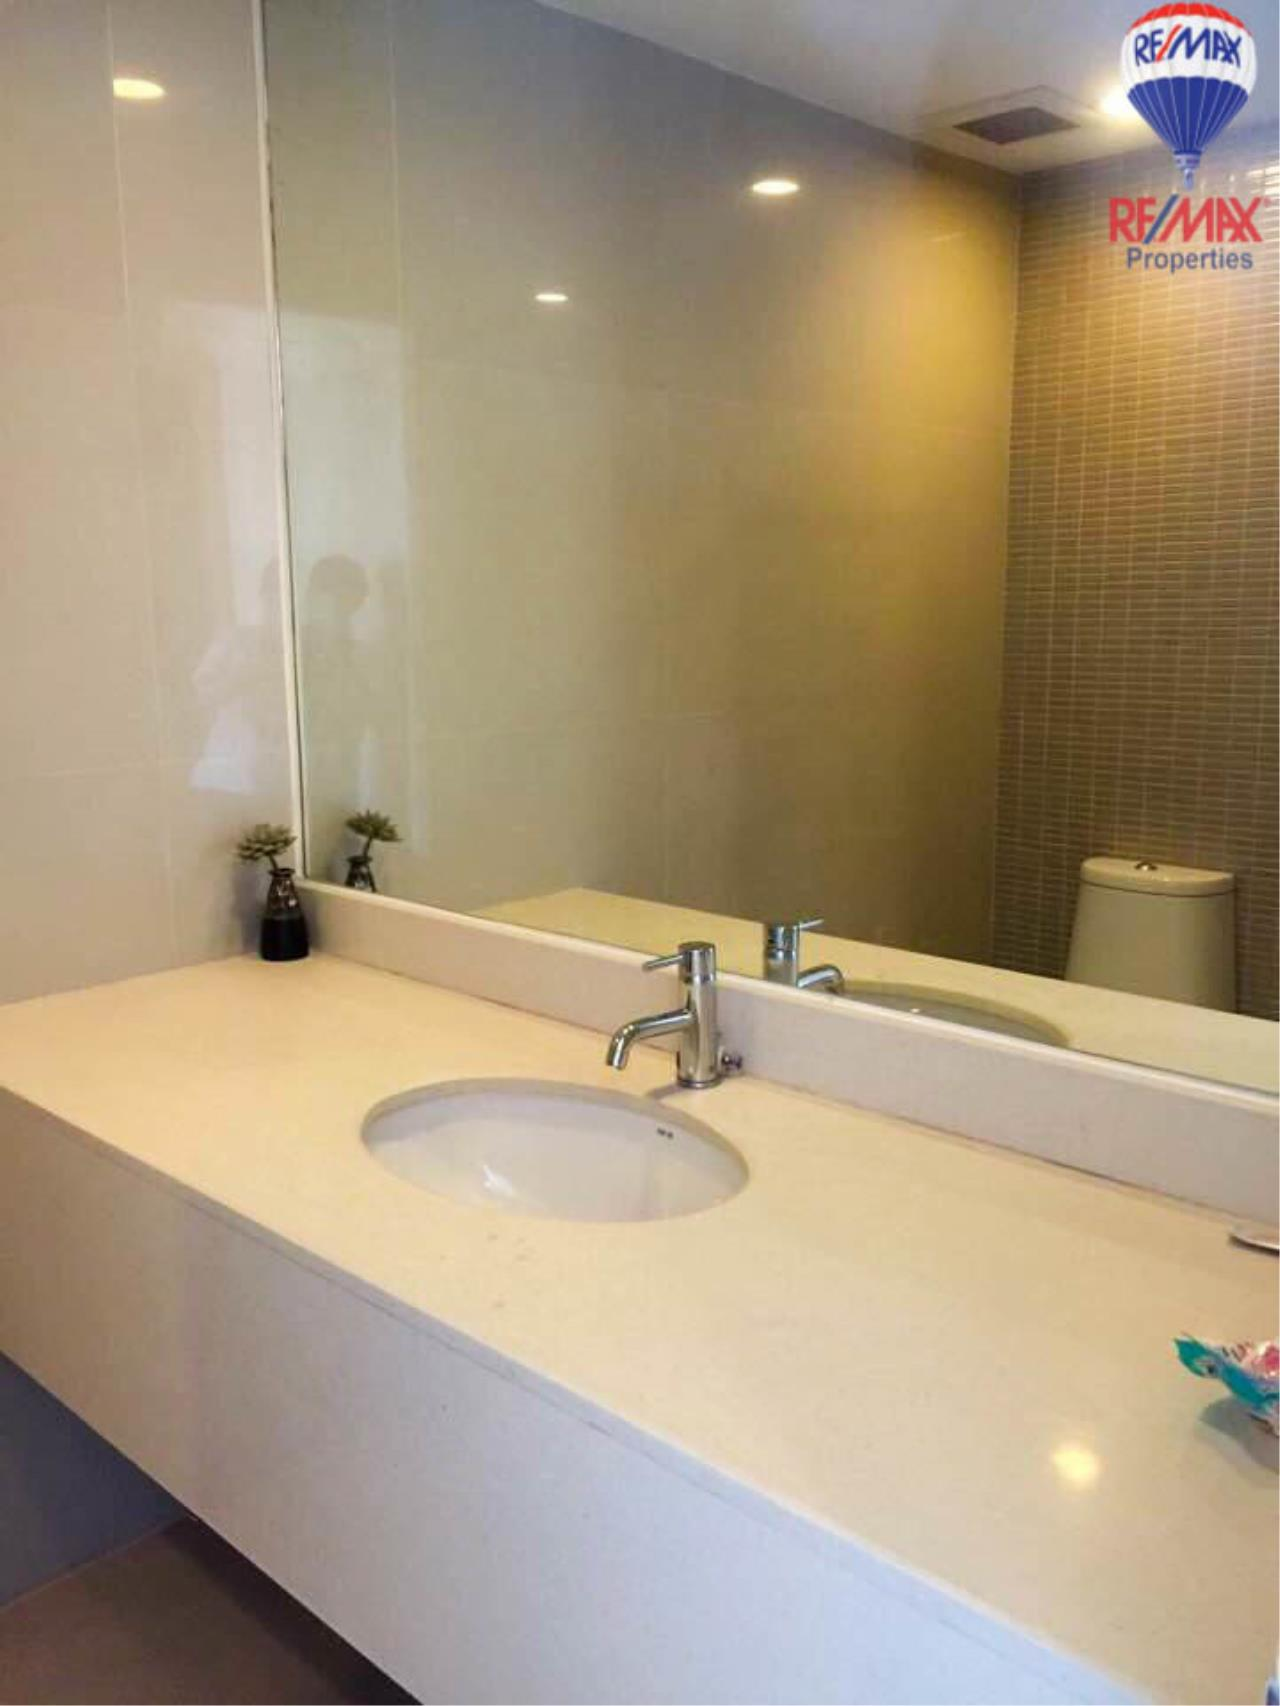 RE/MAX Properties Agency's 2 Bedrooms Duplex style for rent at The Trendy condo 15